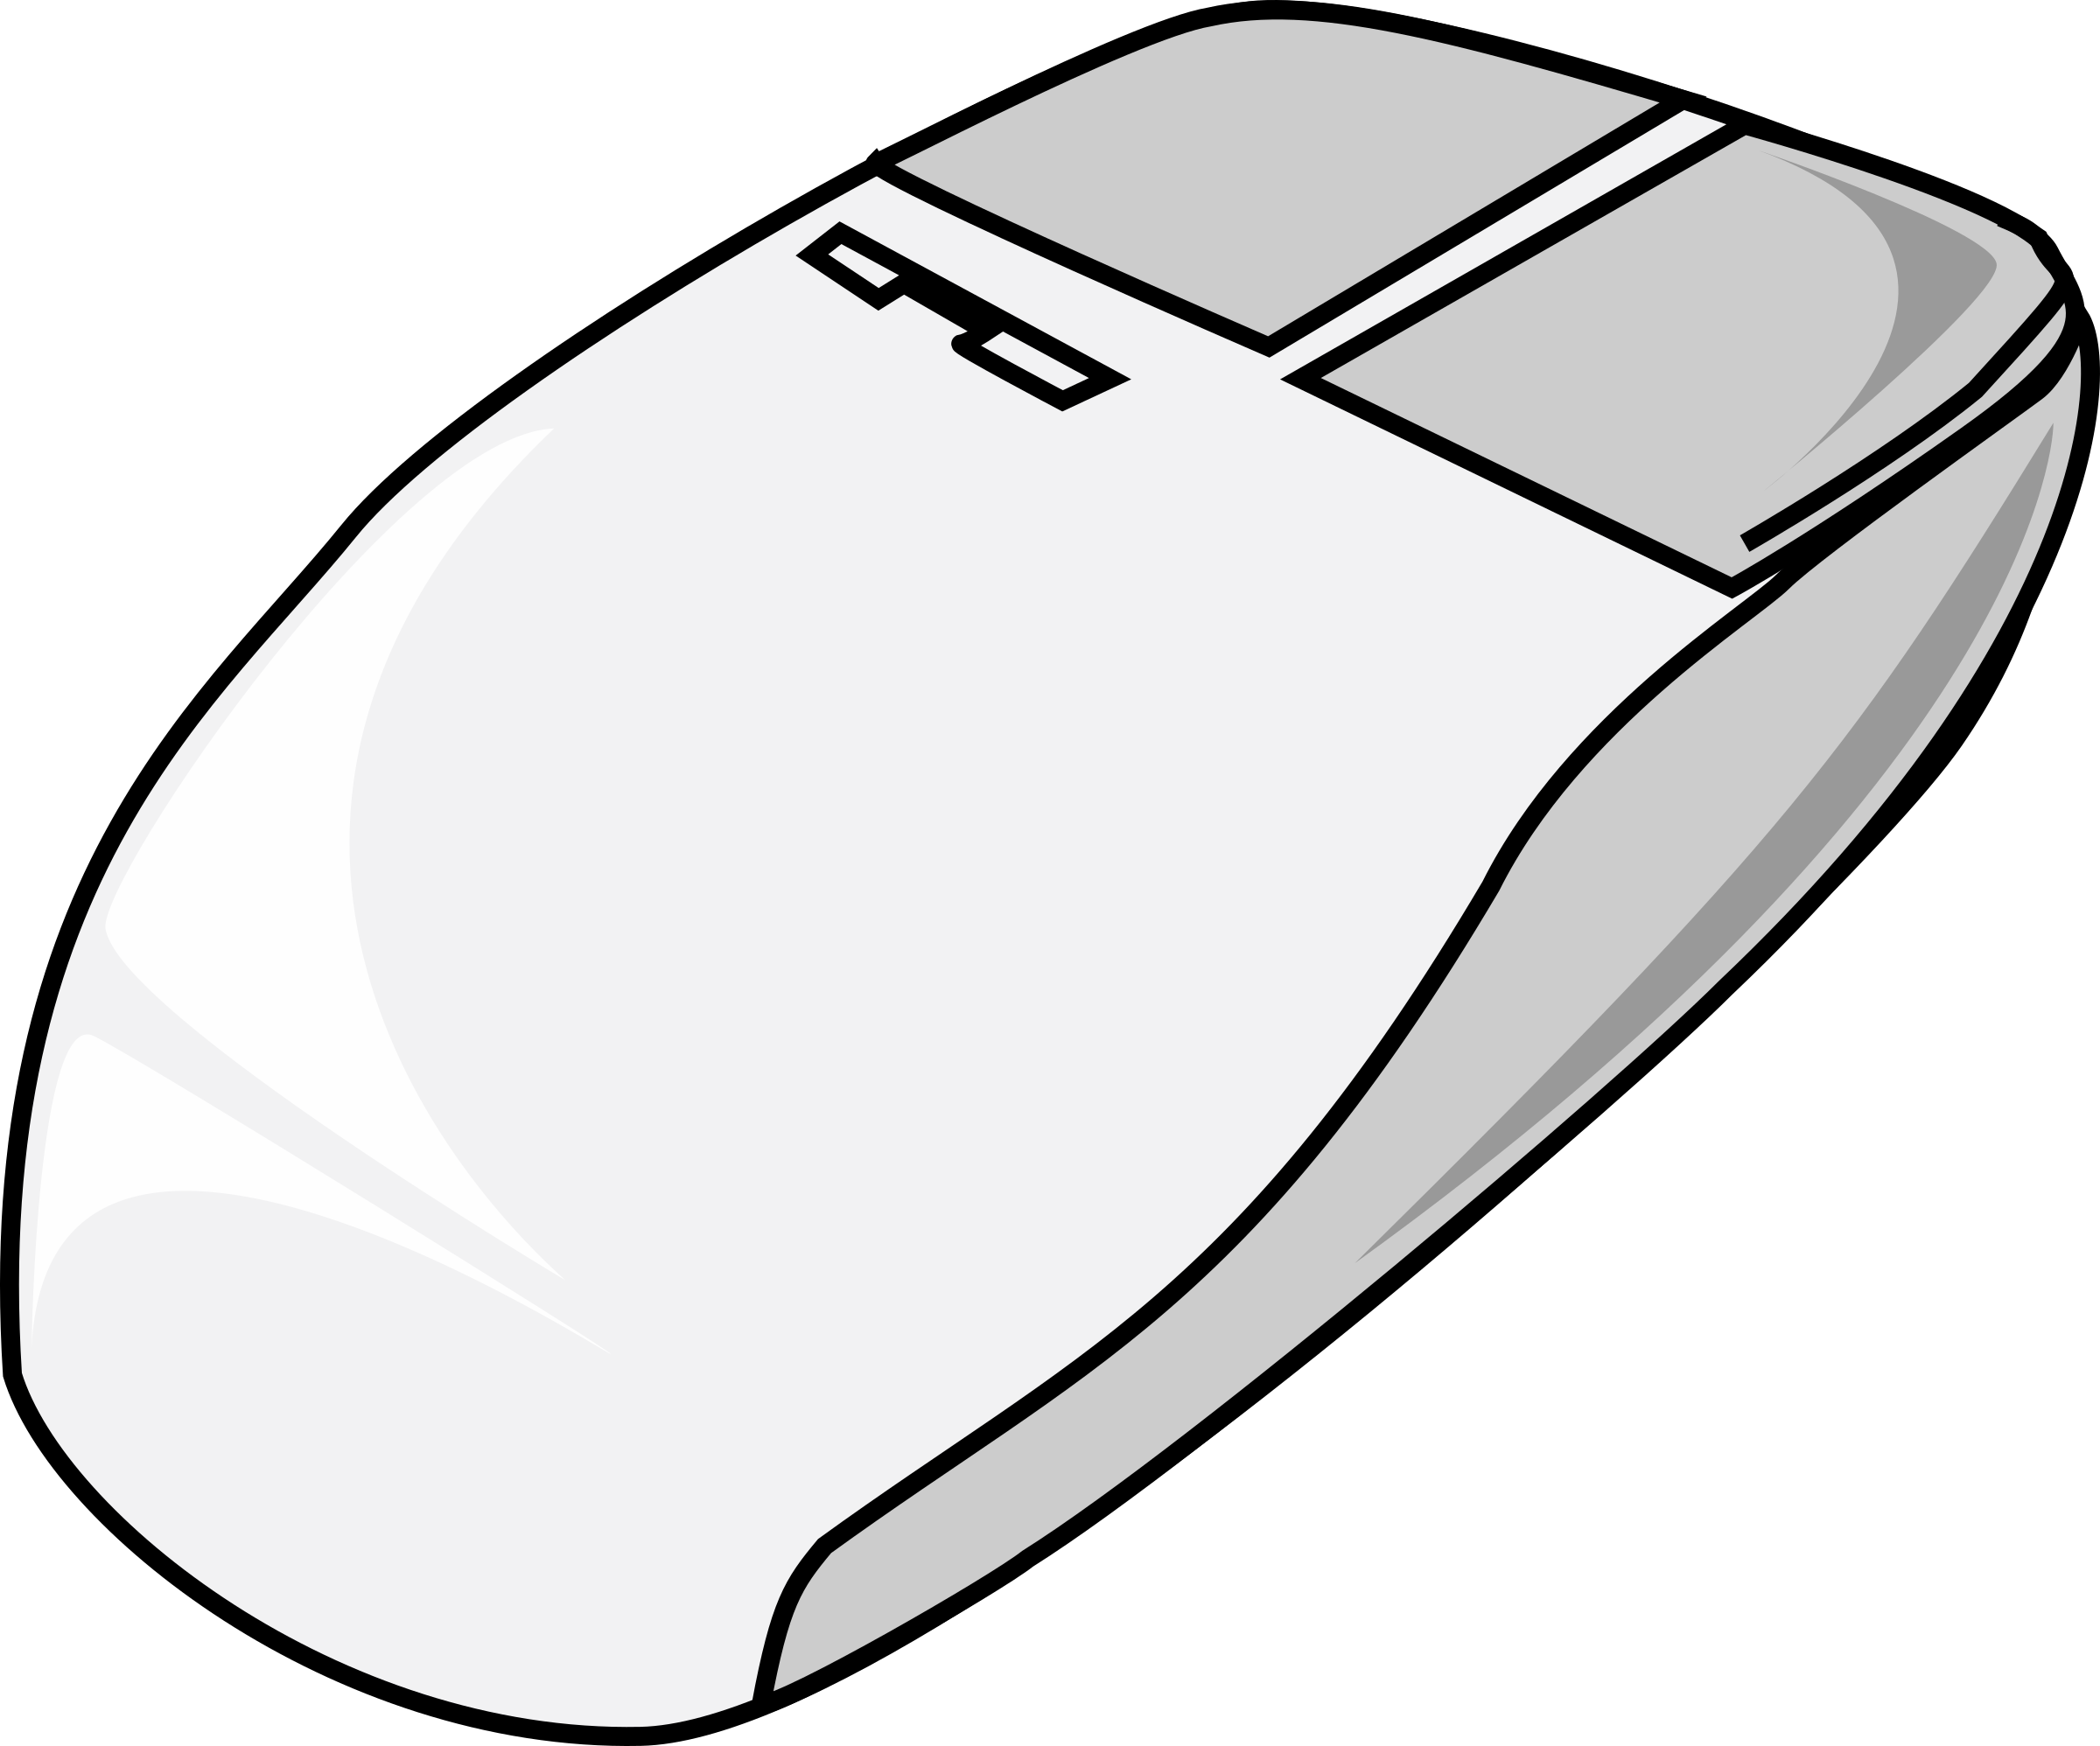 Mouse big image png. Computer clipart animated